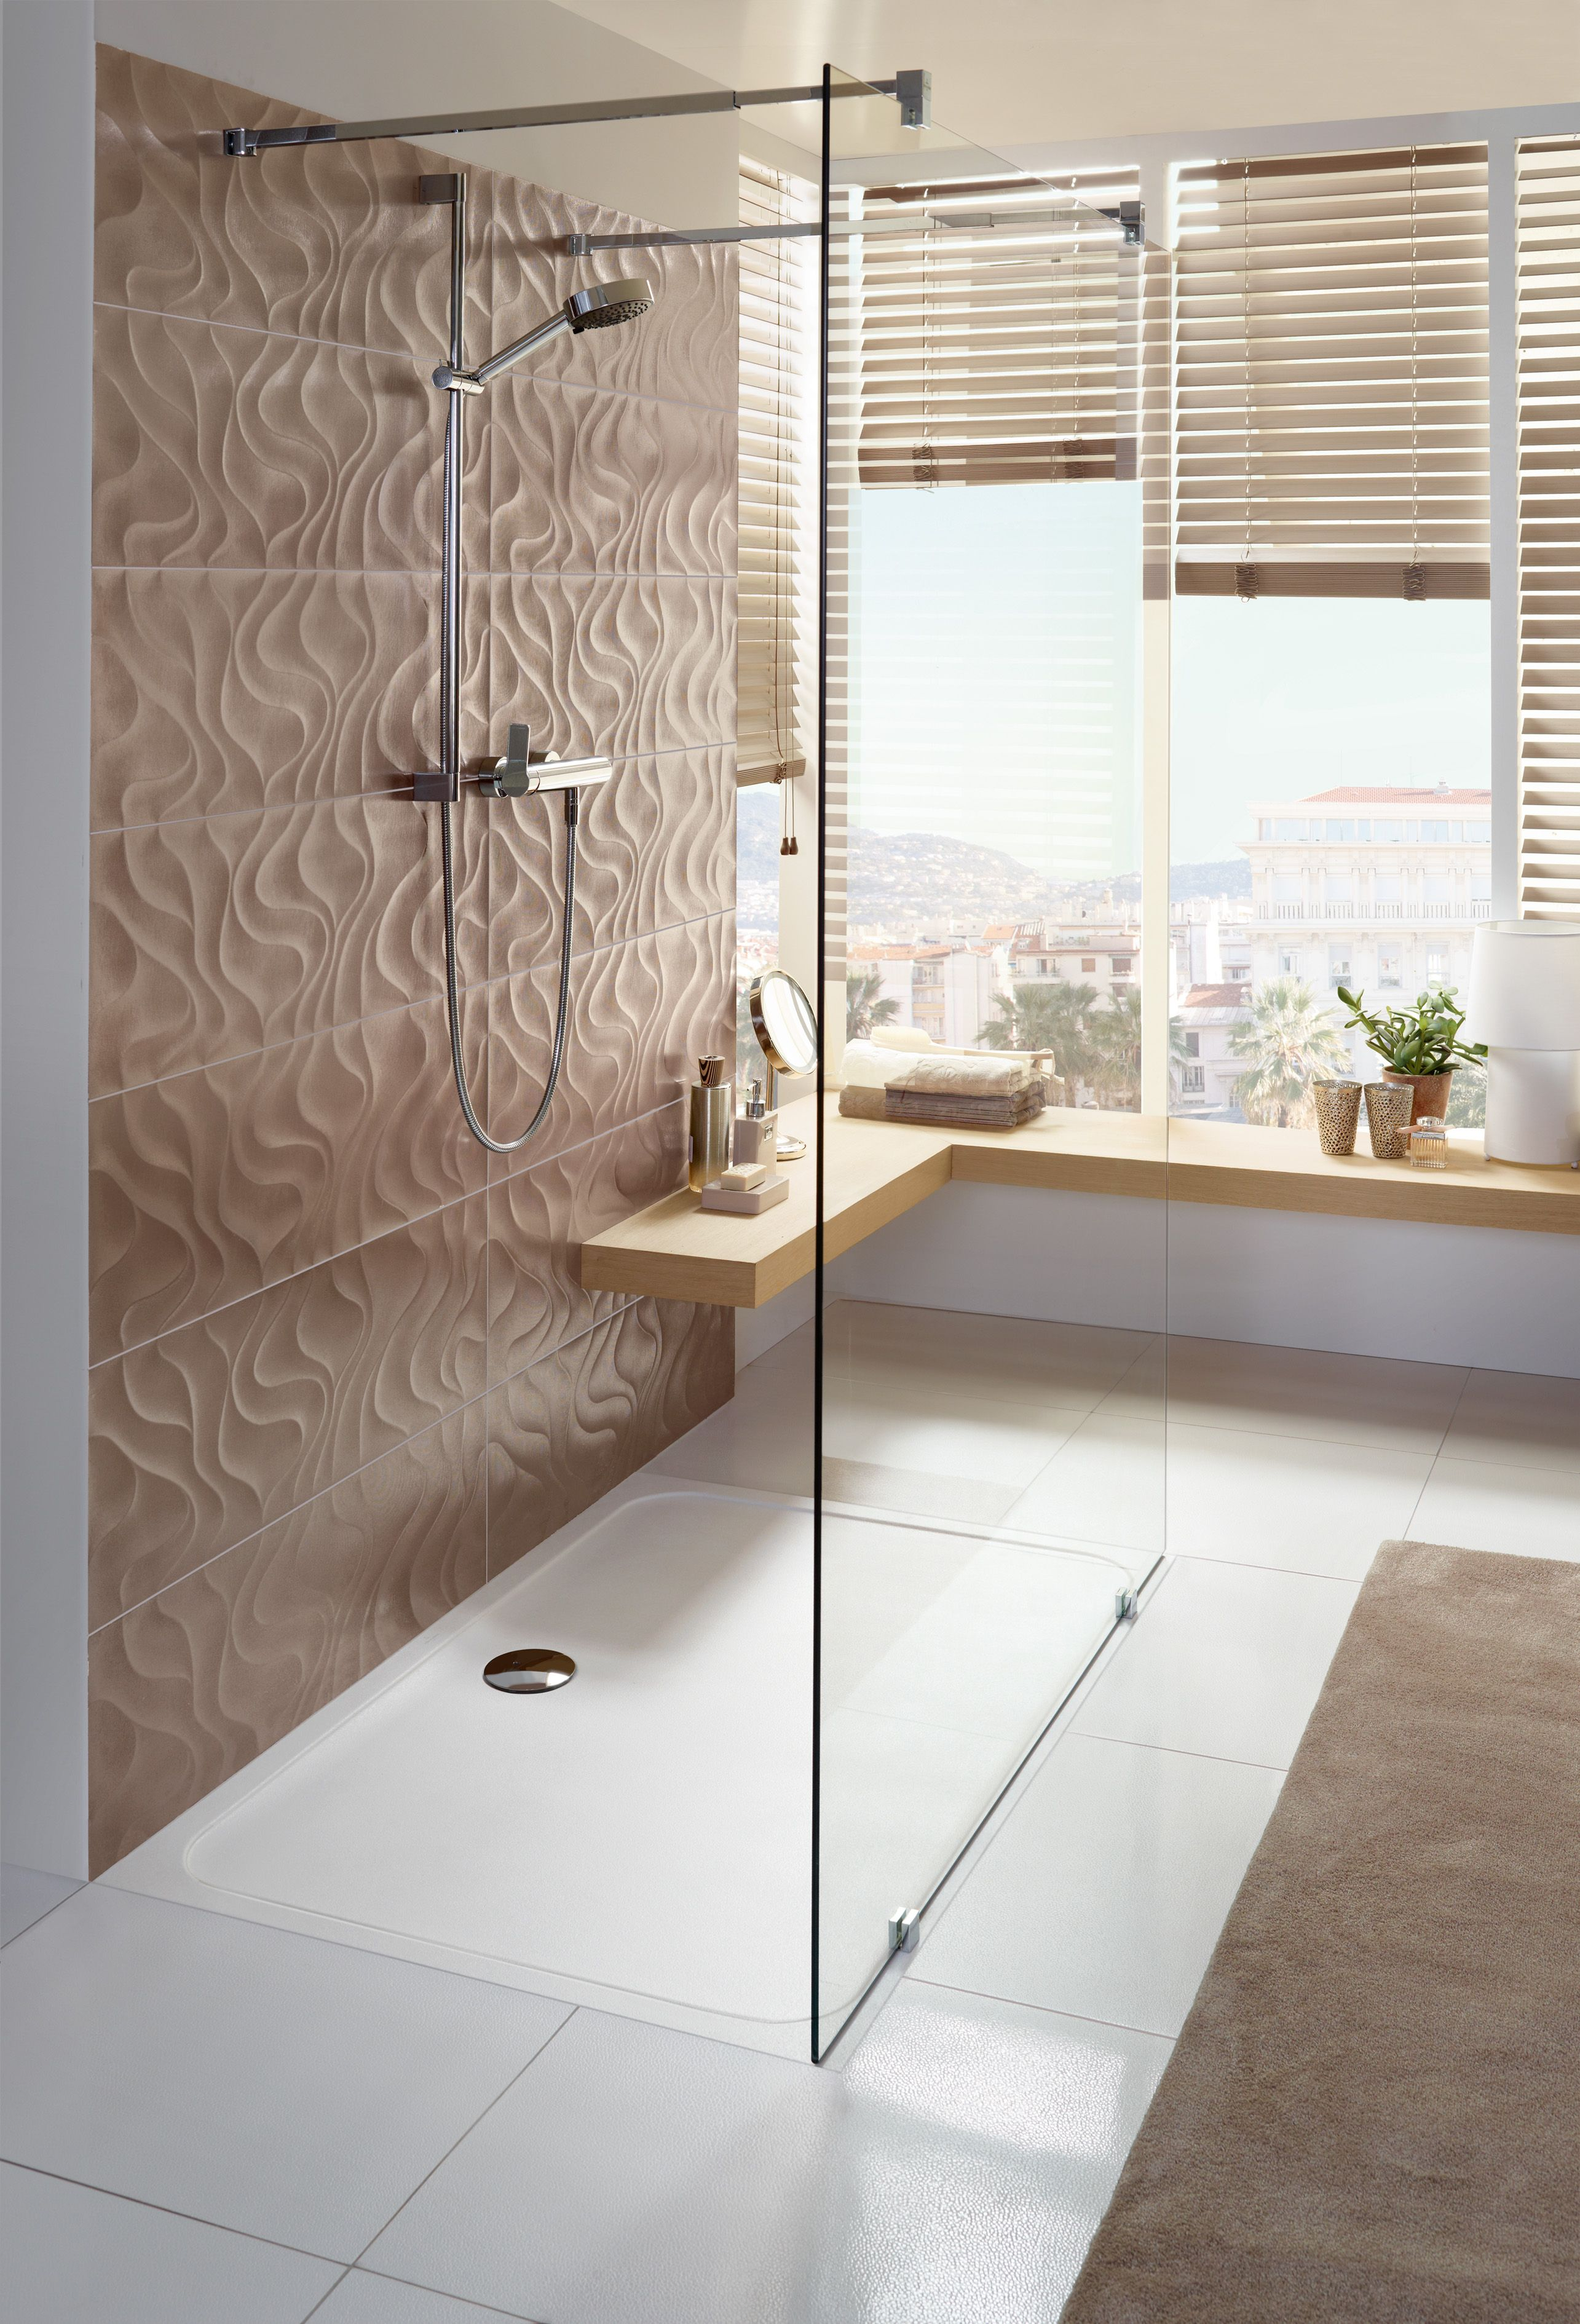 warm colors bright bathroom flat shower tray does this come close to your dream bathroom www. Black Bedroom Furniture Sets. Home Design Ideas